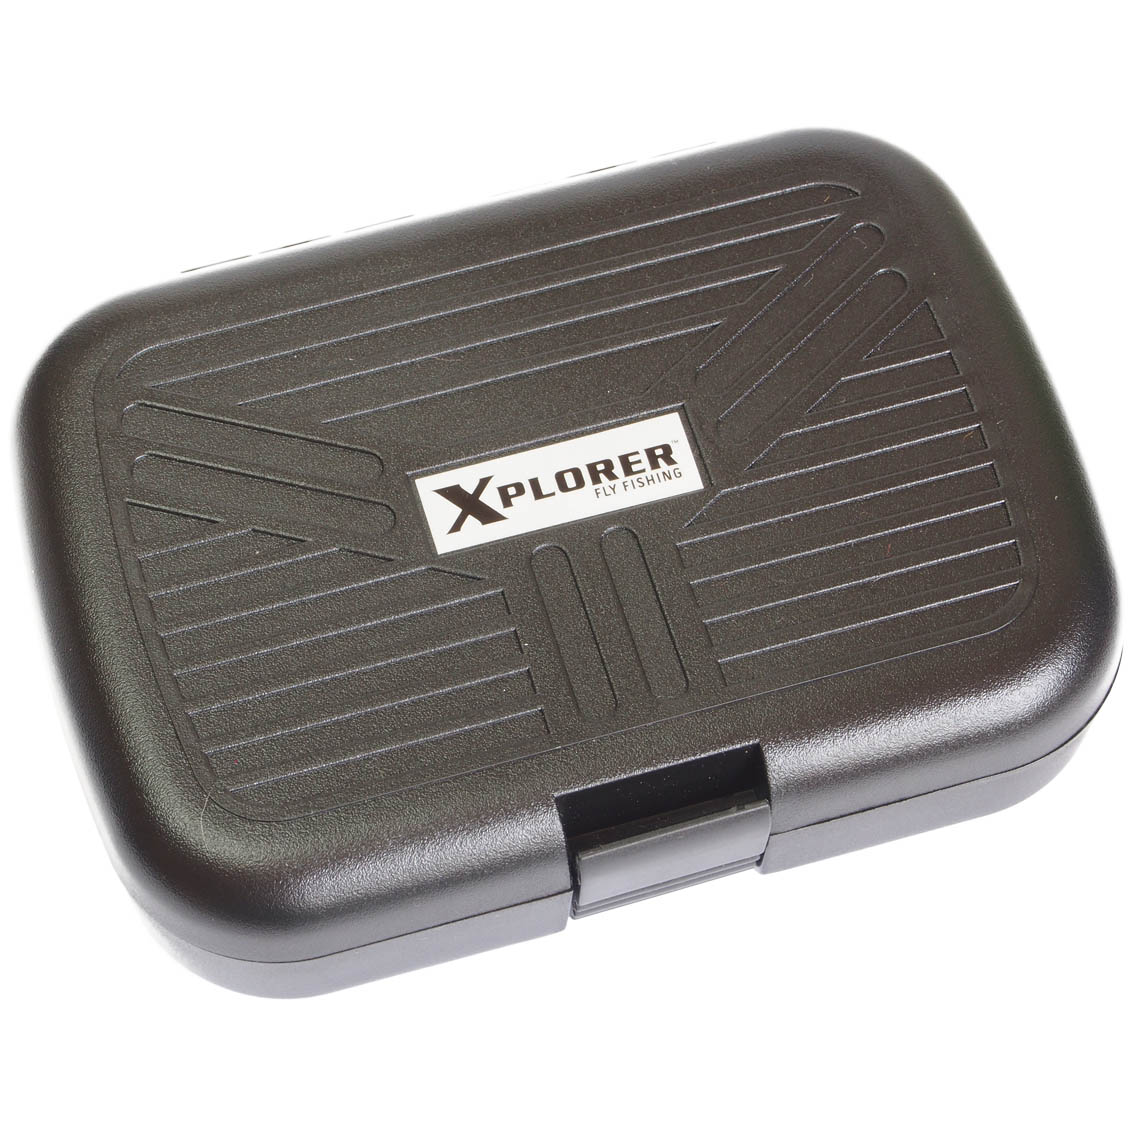 Caixa para Moscas Xplorer Pocket Pal Slit Box